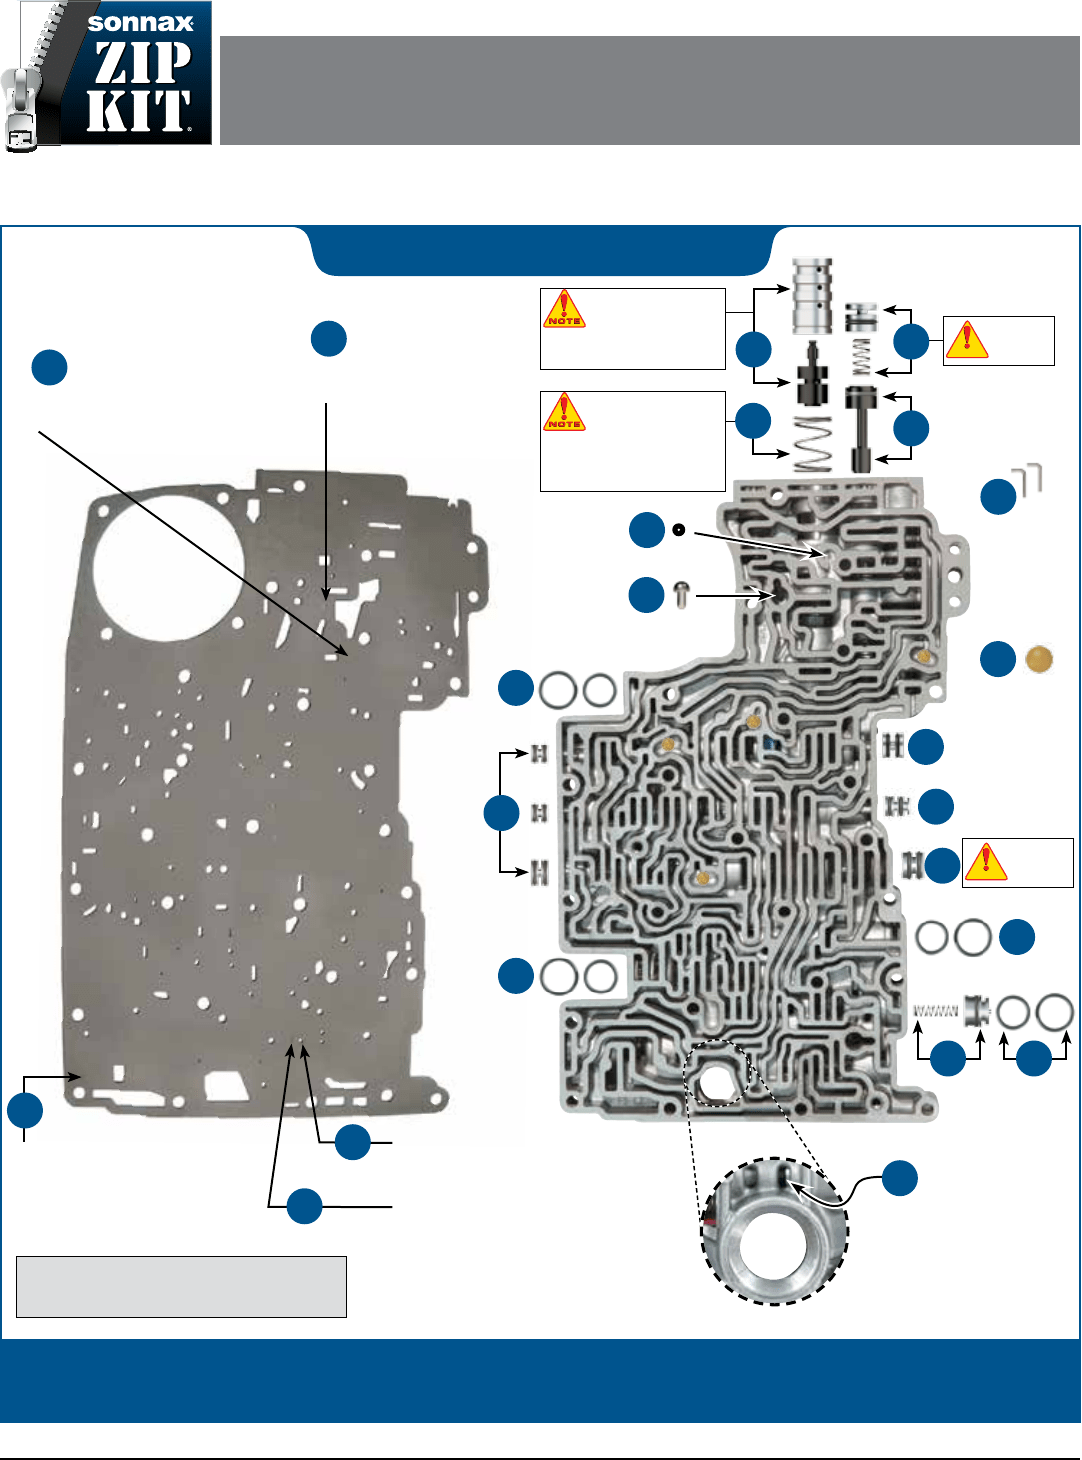 hight resolution of  4wd 4r44e diagram color wire management wiring diagram on th400 diagram ford diagram